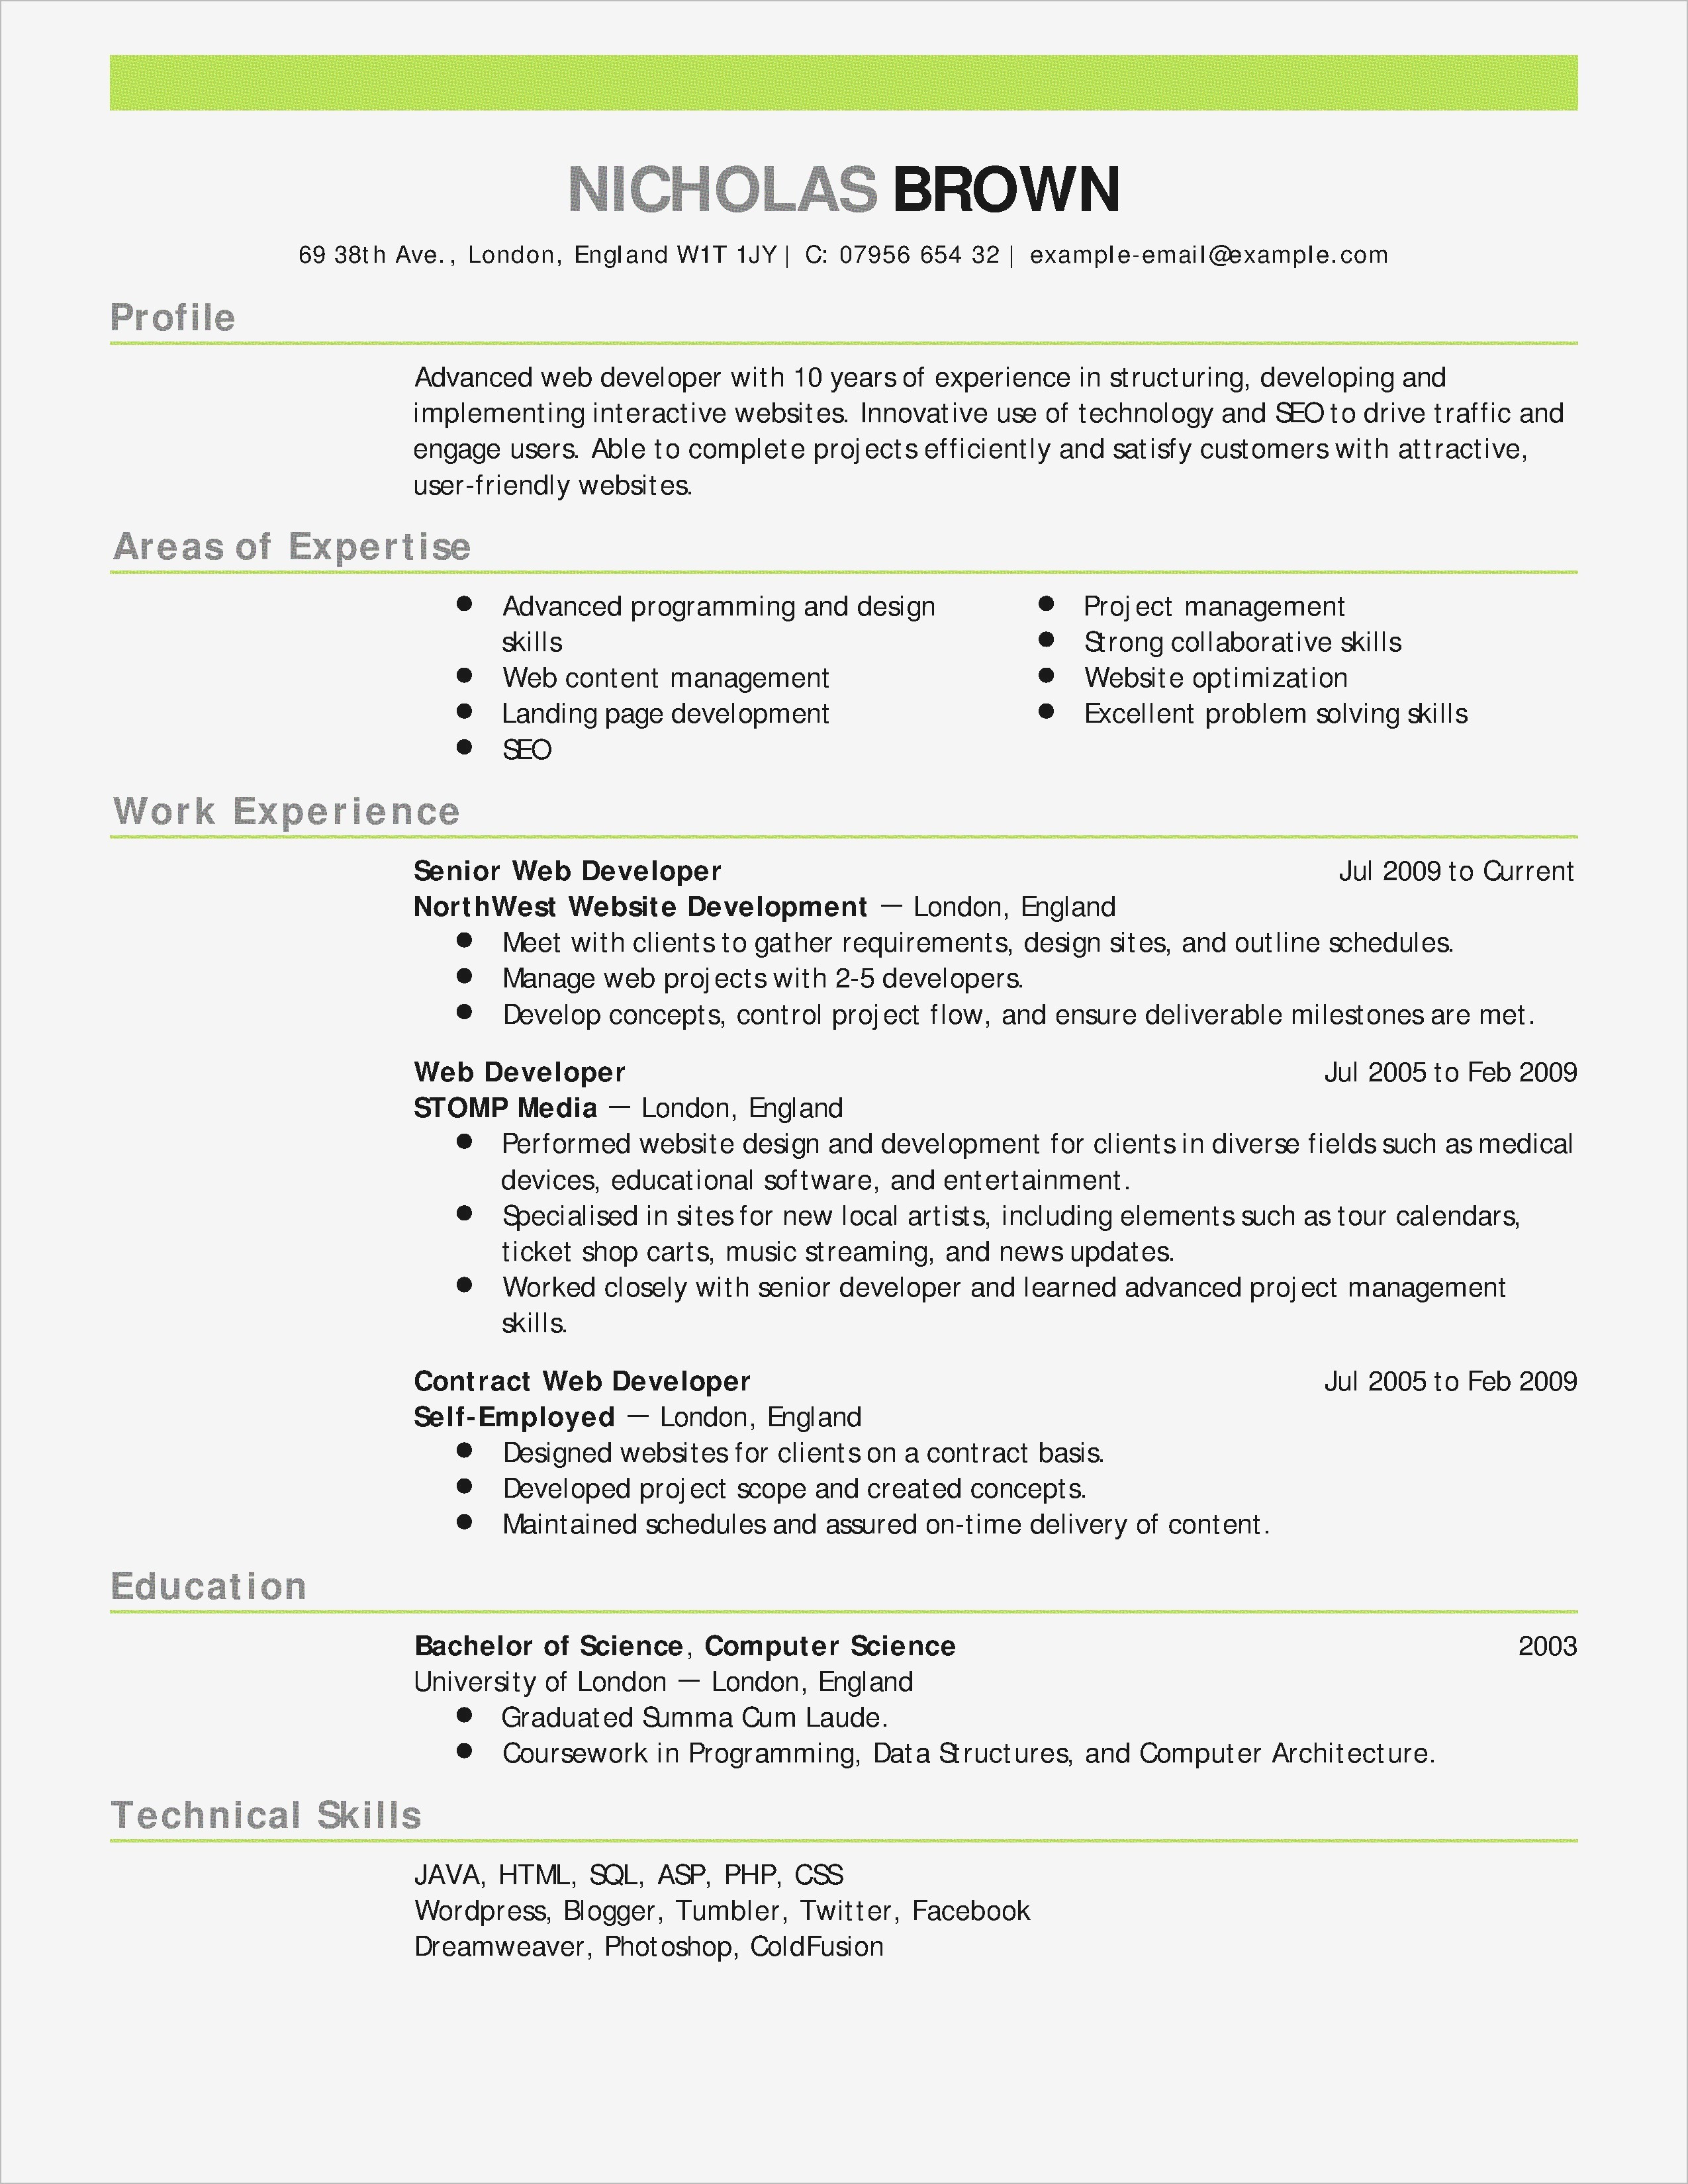 supporting letter template Collection-maintenance cover letter template maintenance experience resume reference elegant cover letter writing service awesome paralegal resume 0d 6g 11-o